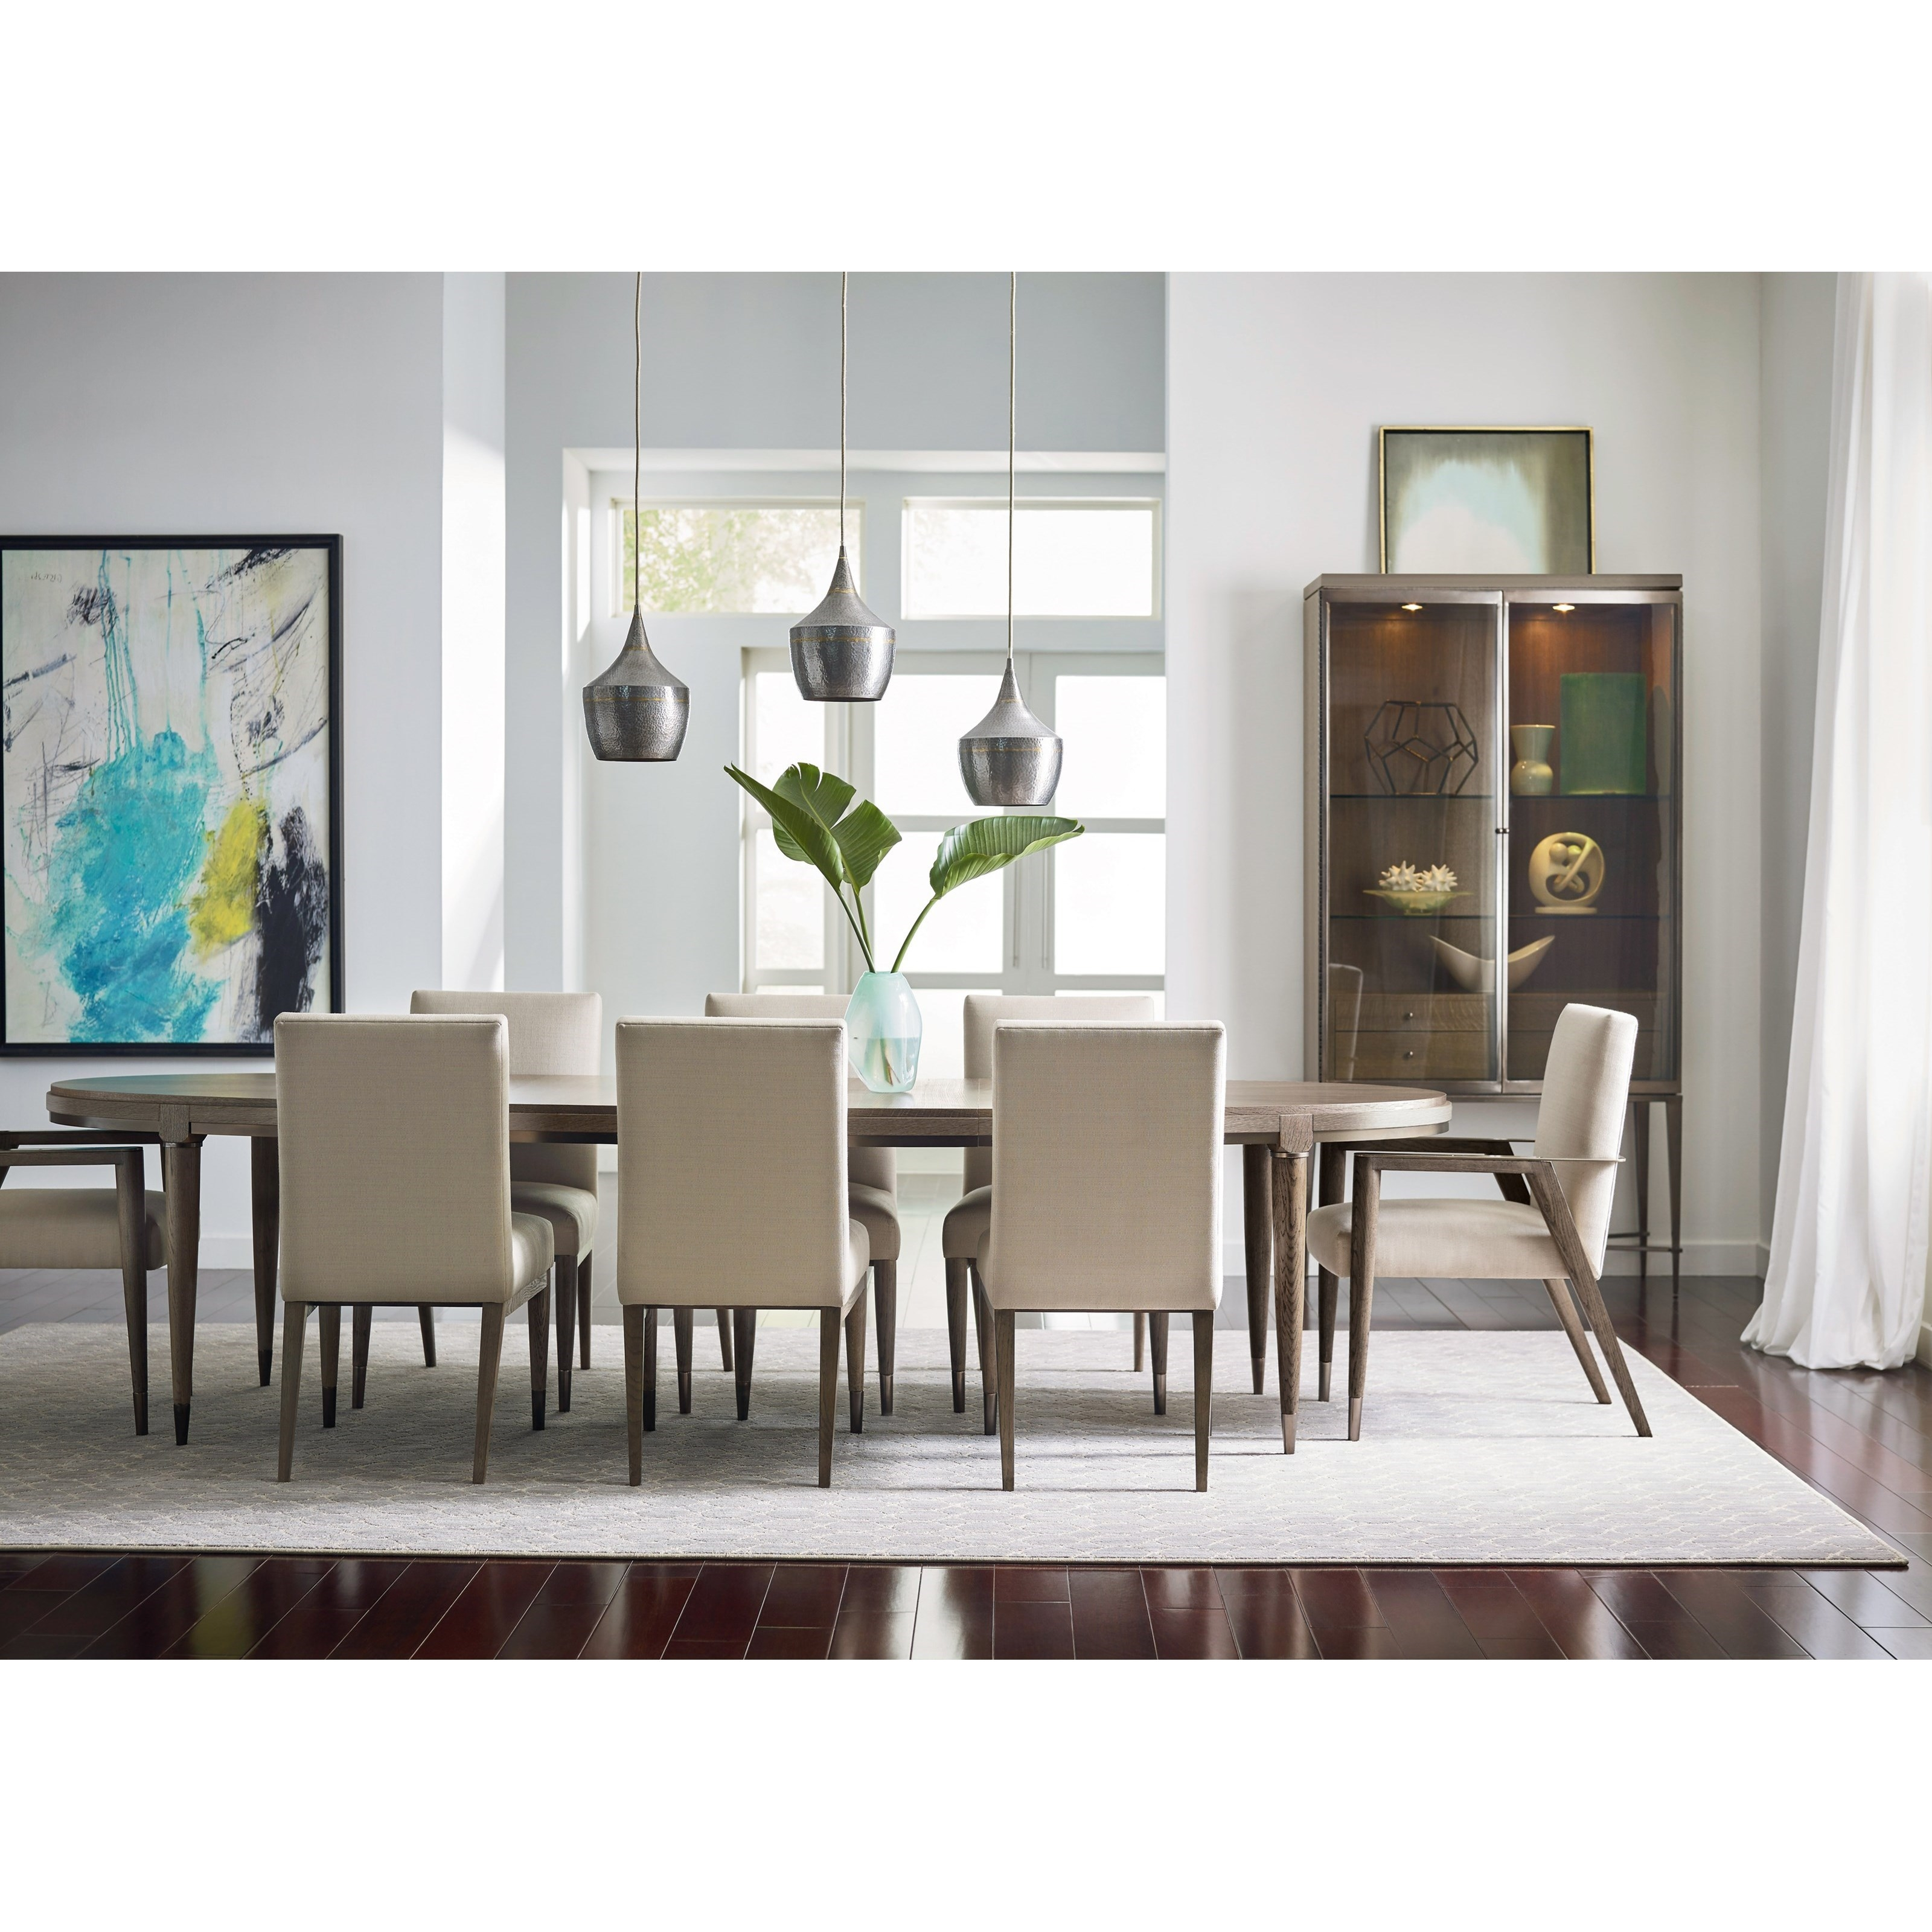 ad modern classics mid century modern formal dining room group american drew at lindys furniture company